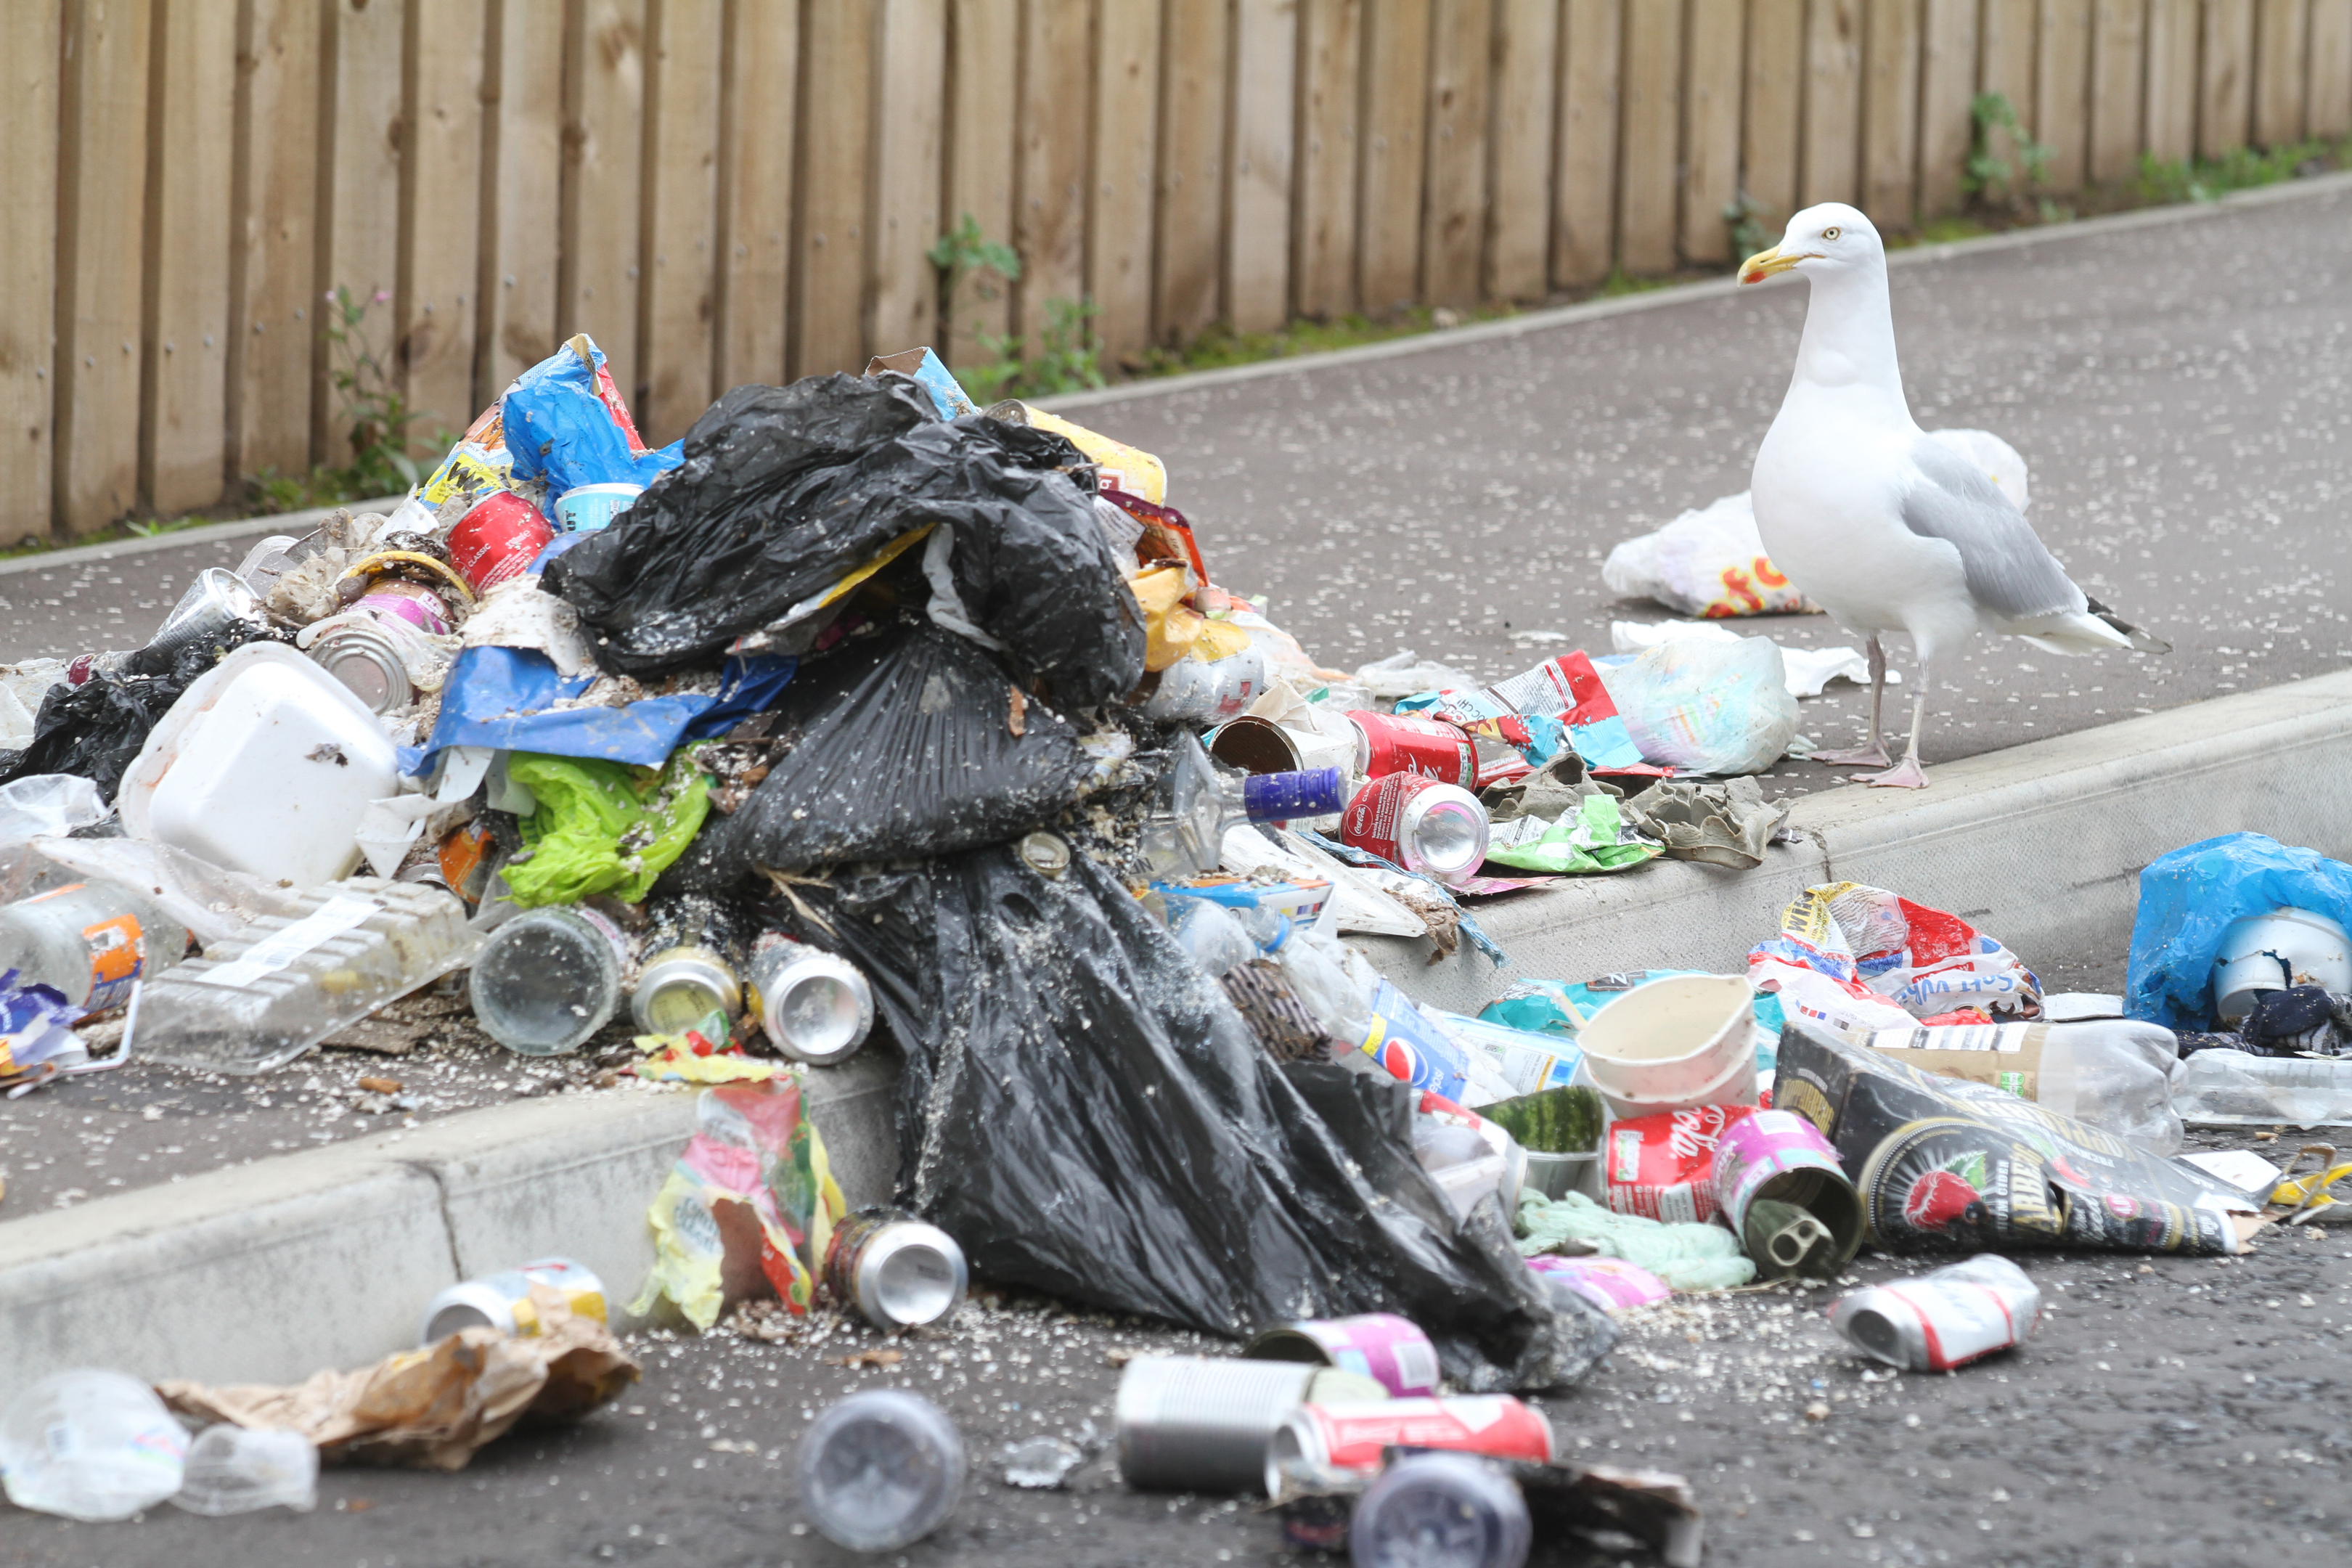 Zero Waste Scotland hope to change behaviour and attitudes to dropping litter